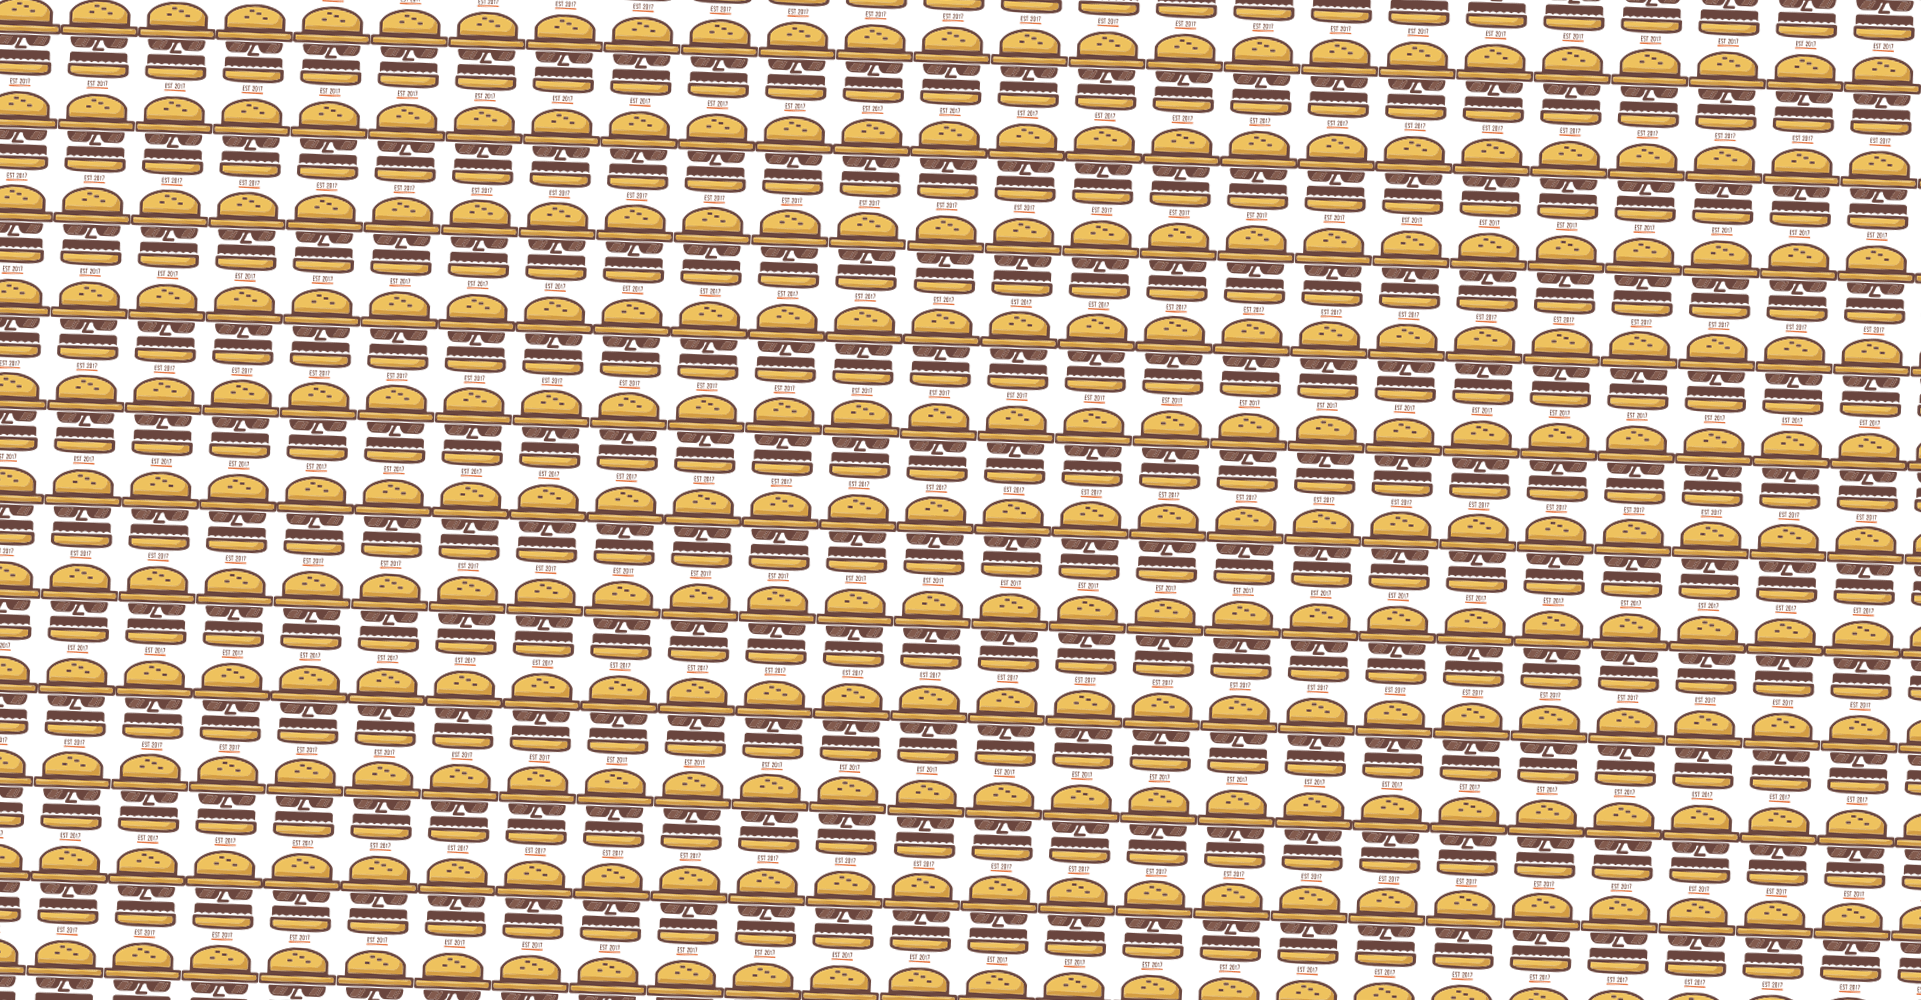 small-repeated-hamburger-background